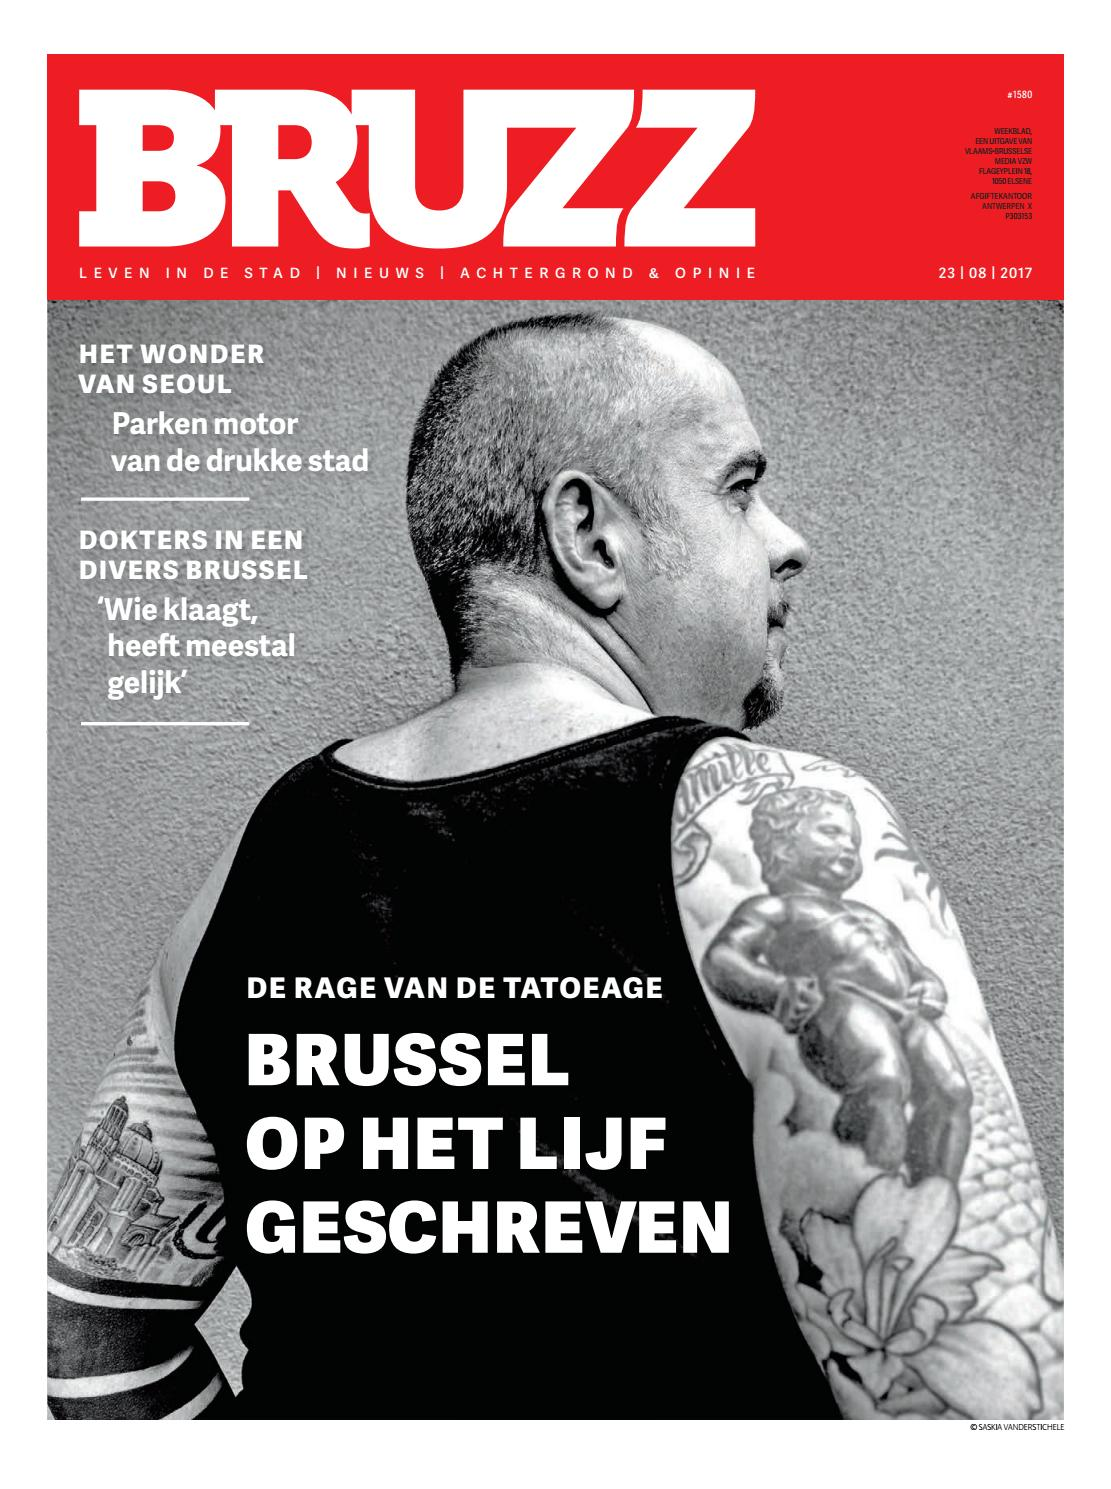 Goedkope Keukens Brussel Bruzz Actua Editie 1580 By Bruzz Be Issuu